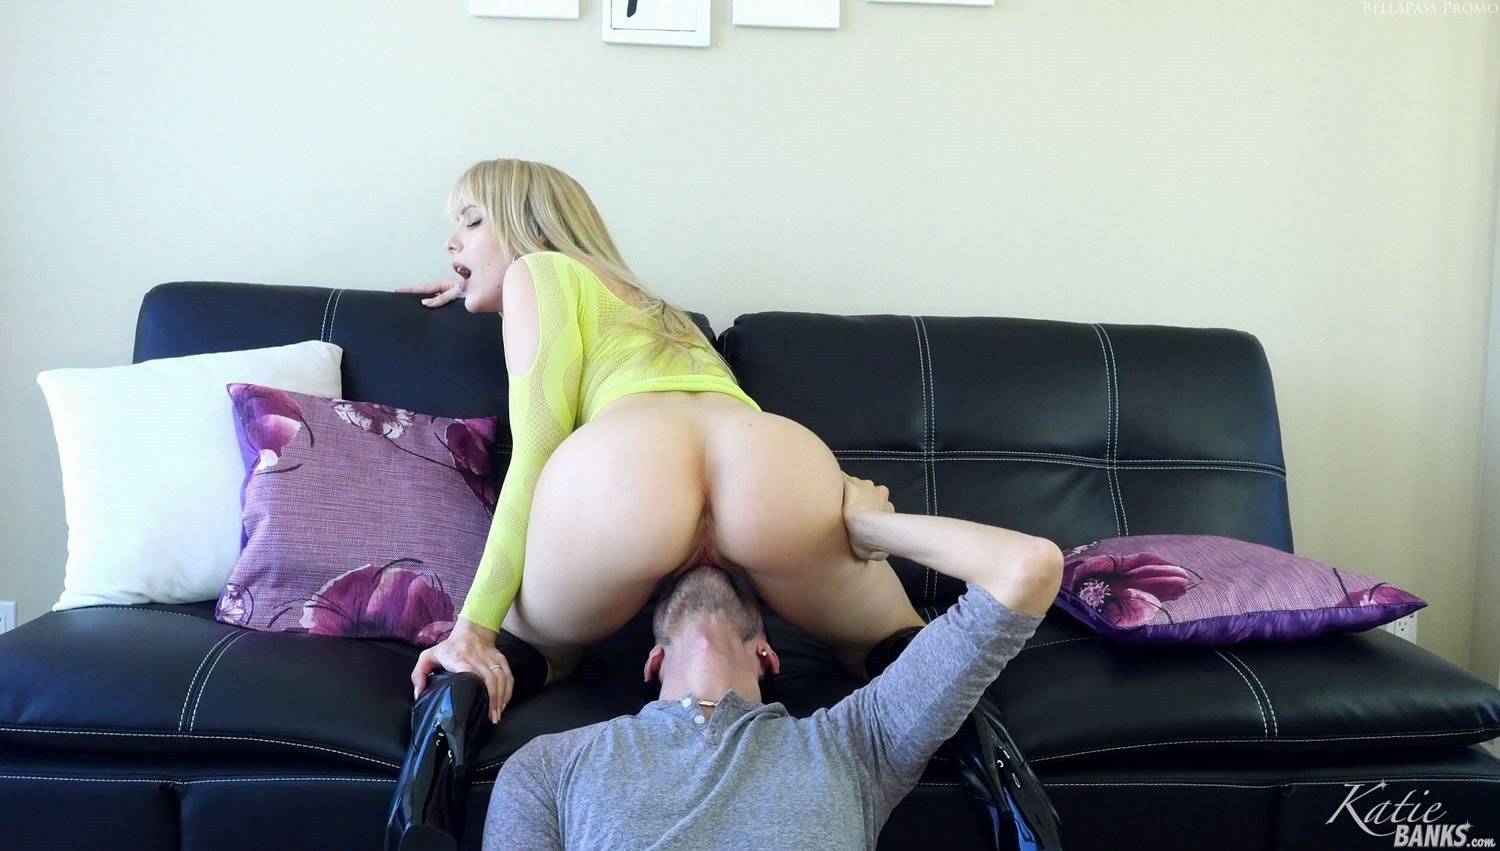 Katie Banks Fucked in Boots - Fine Hotties - Hot Naked ...